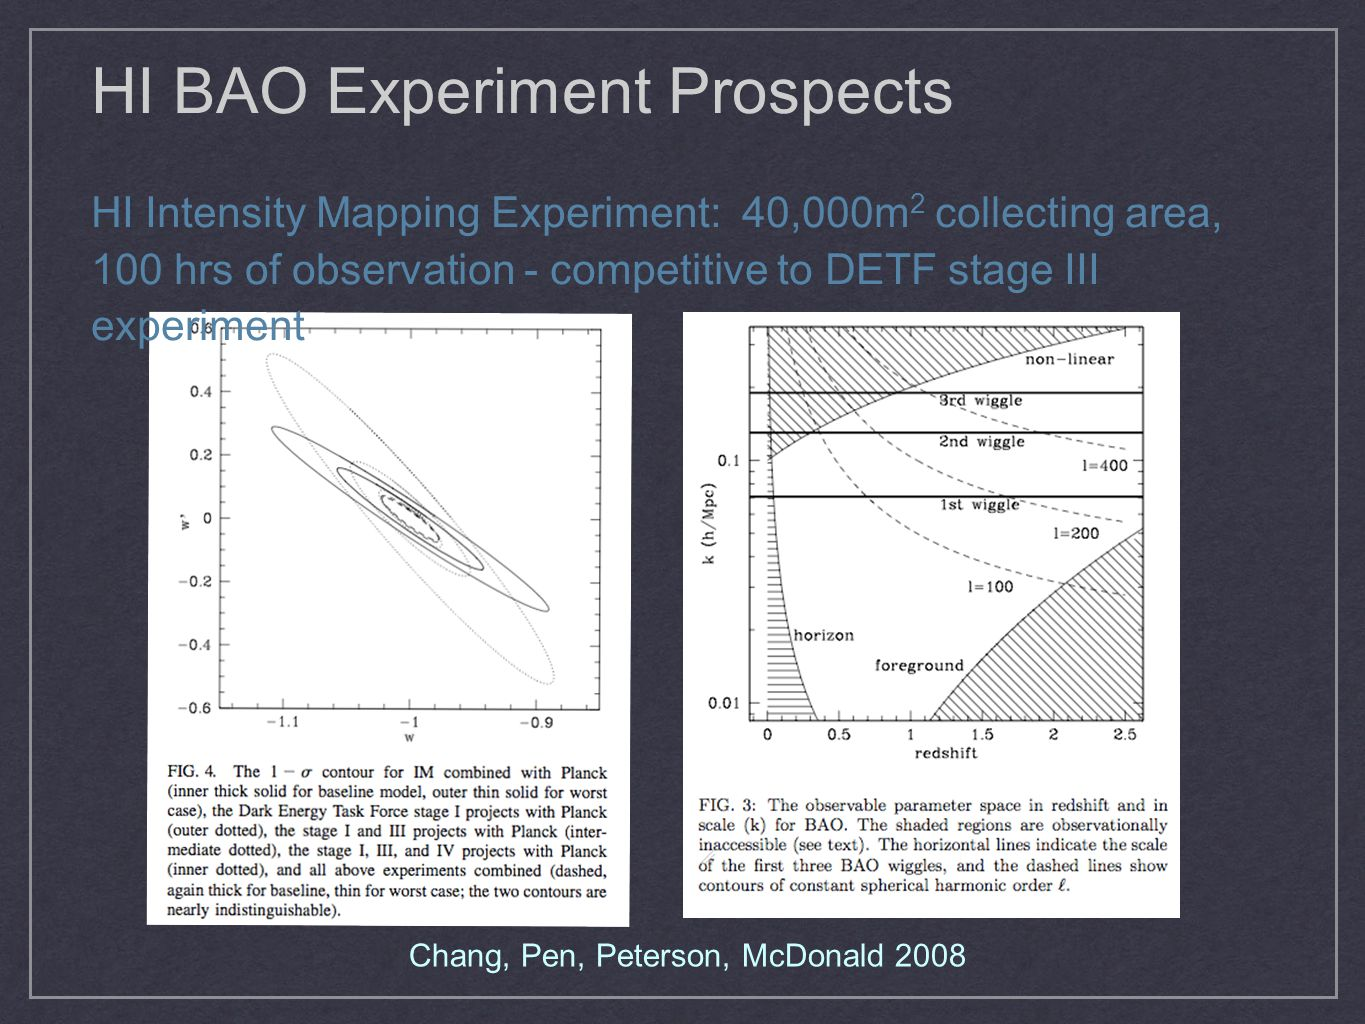 HI BAO Experiment Prospects HI Intensity Mapping Experiment: 40,000m 2 collecting area, 100 hrs of observation - competitive to DETF stage III experim